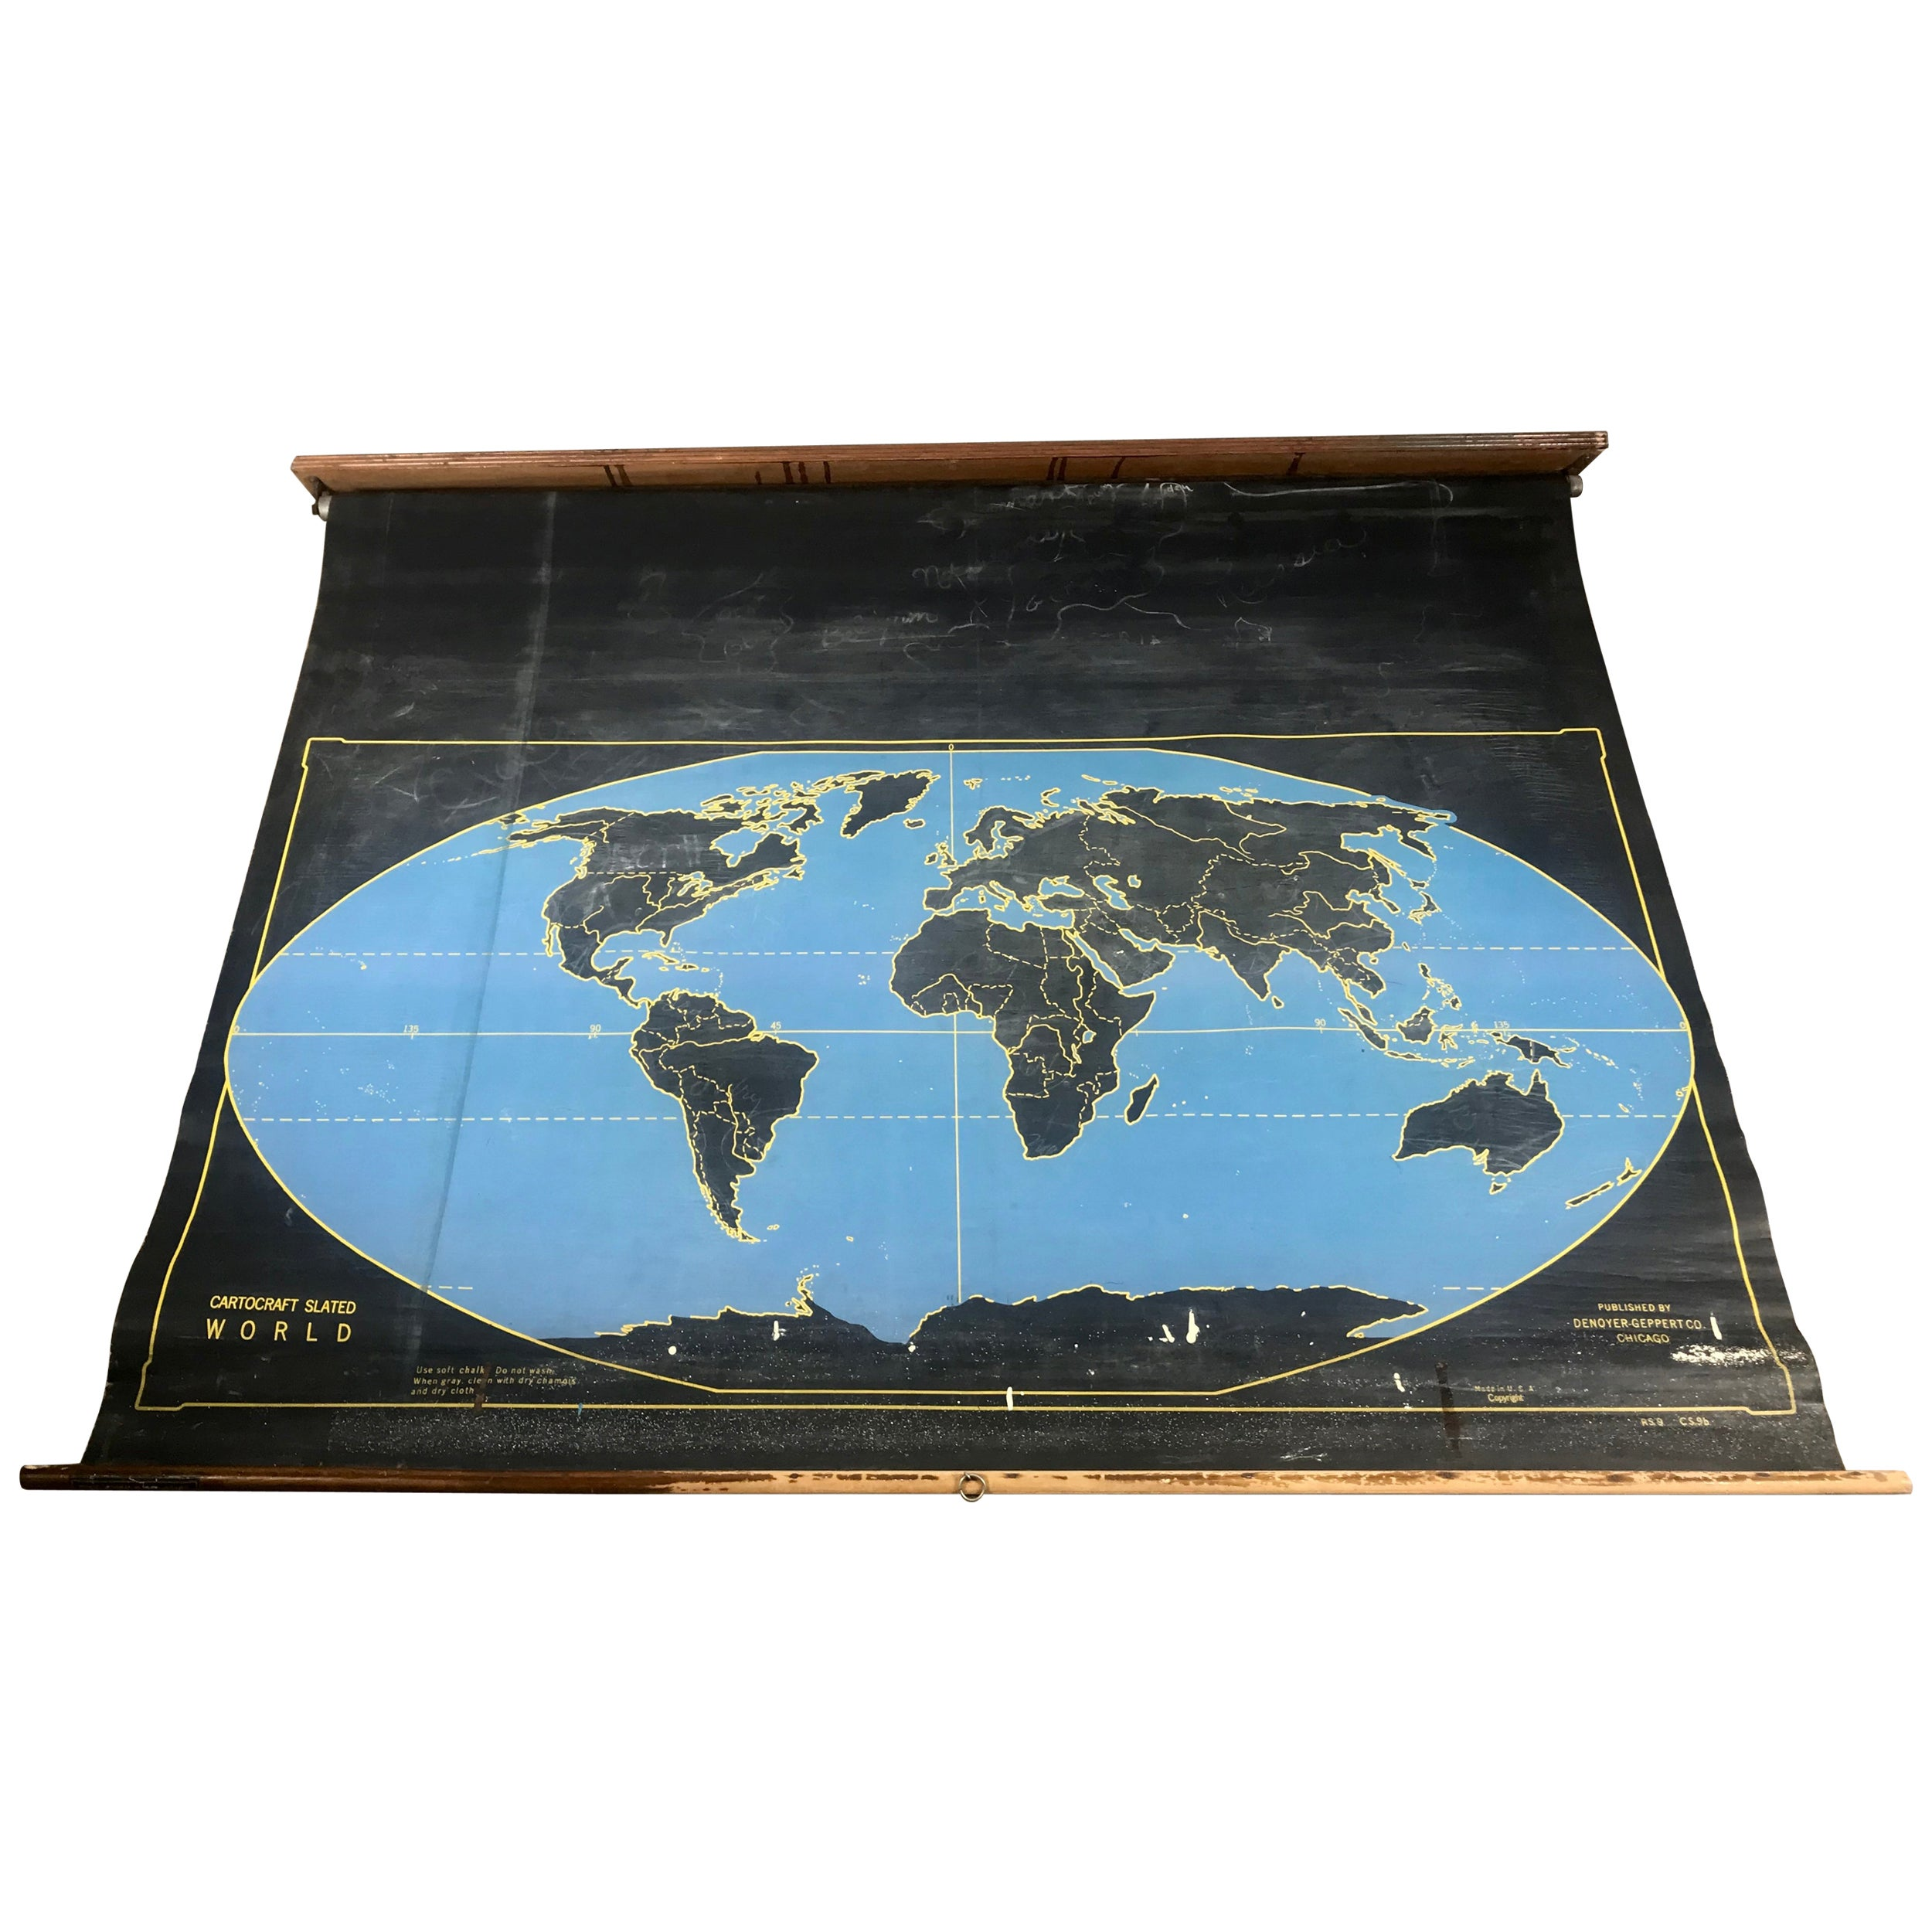 1920s Double Sided Cartocraft Slated Map, U.S.A. and World ... on